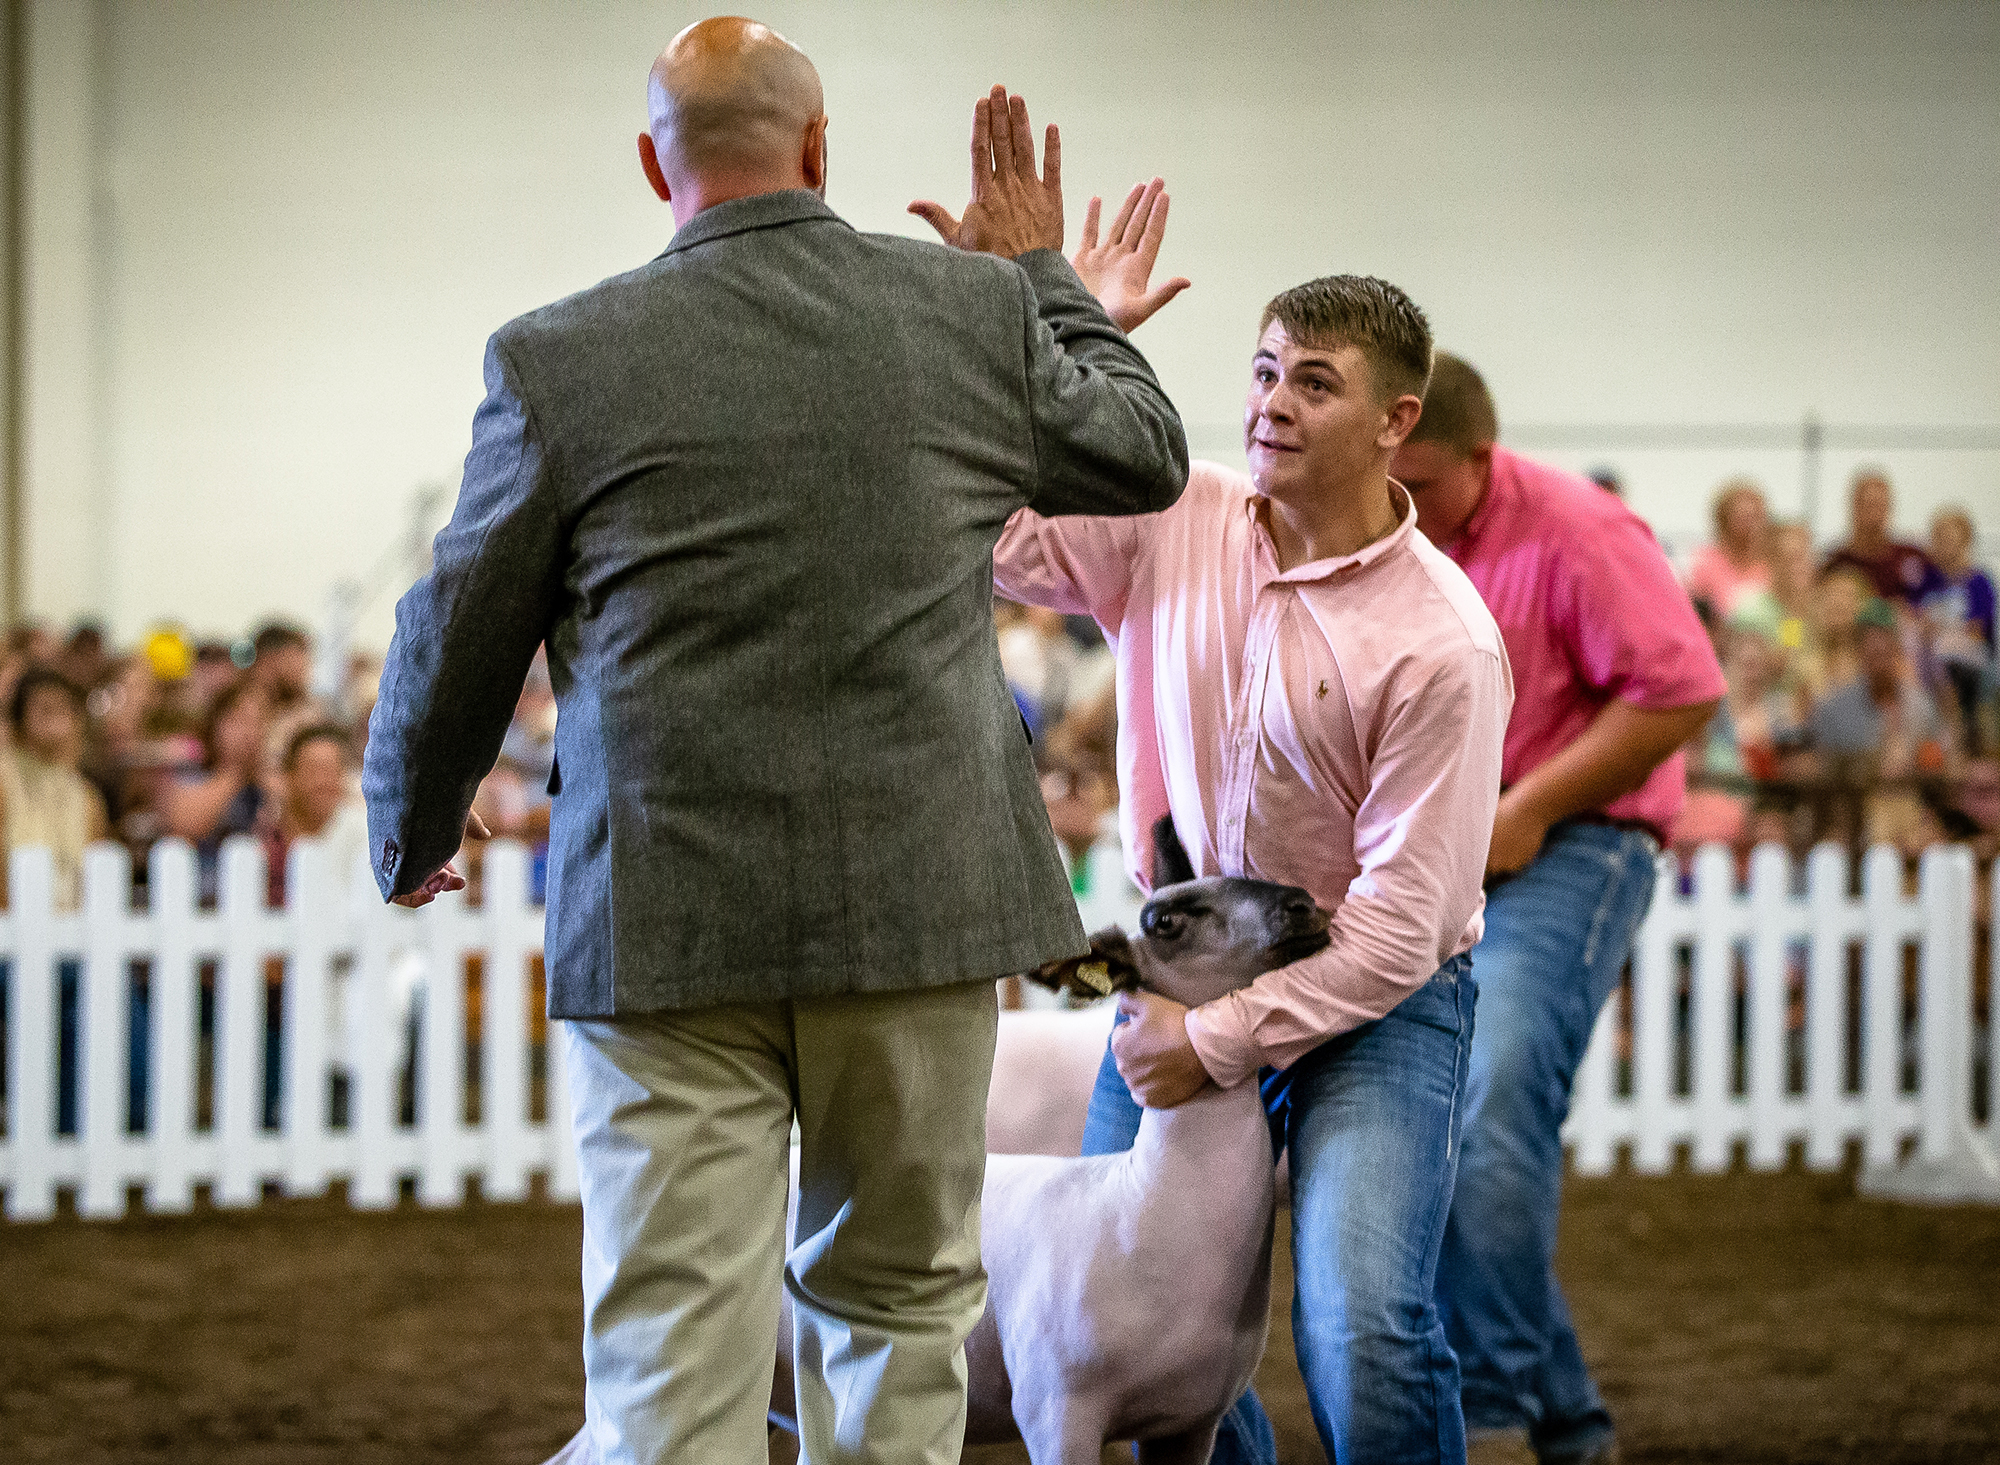 Bryce Clayton, of Winchester, Ill., is congratulated his wether is named Grand Champion during the Parade of Champions at the Livestock Center during the Illinois State Fair at the Illinois State Fairgrounds, Saturday, Aug. 11, 2018, in Springfield, Ill. [Justin L. Fowler/The State Journal-Register]